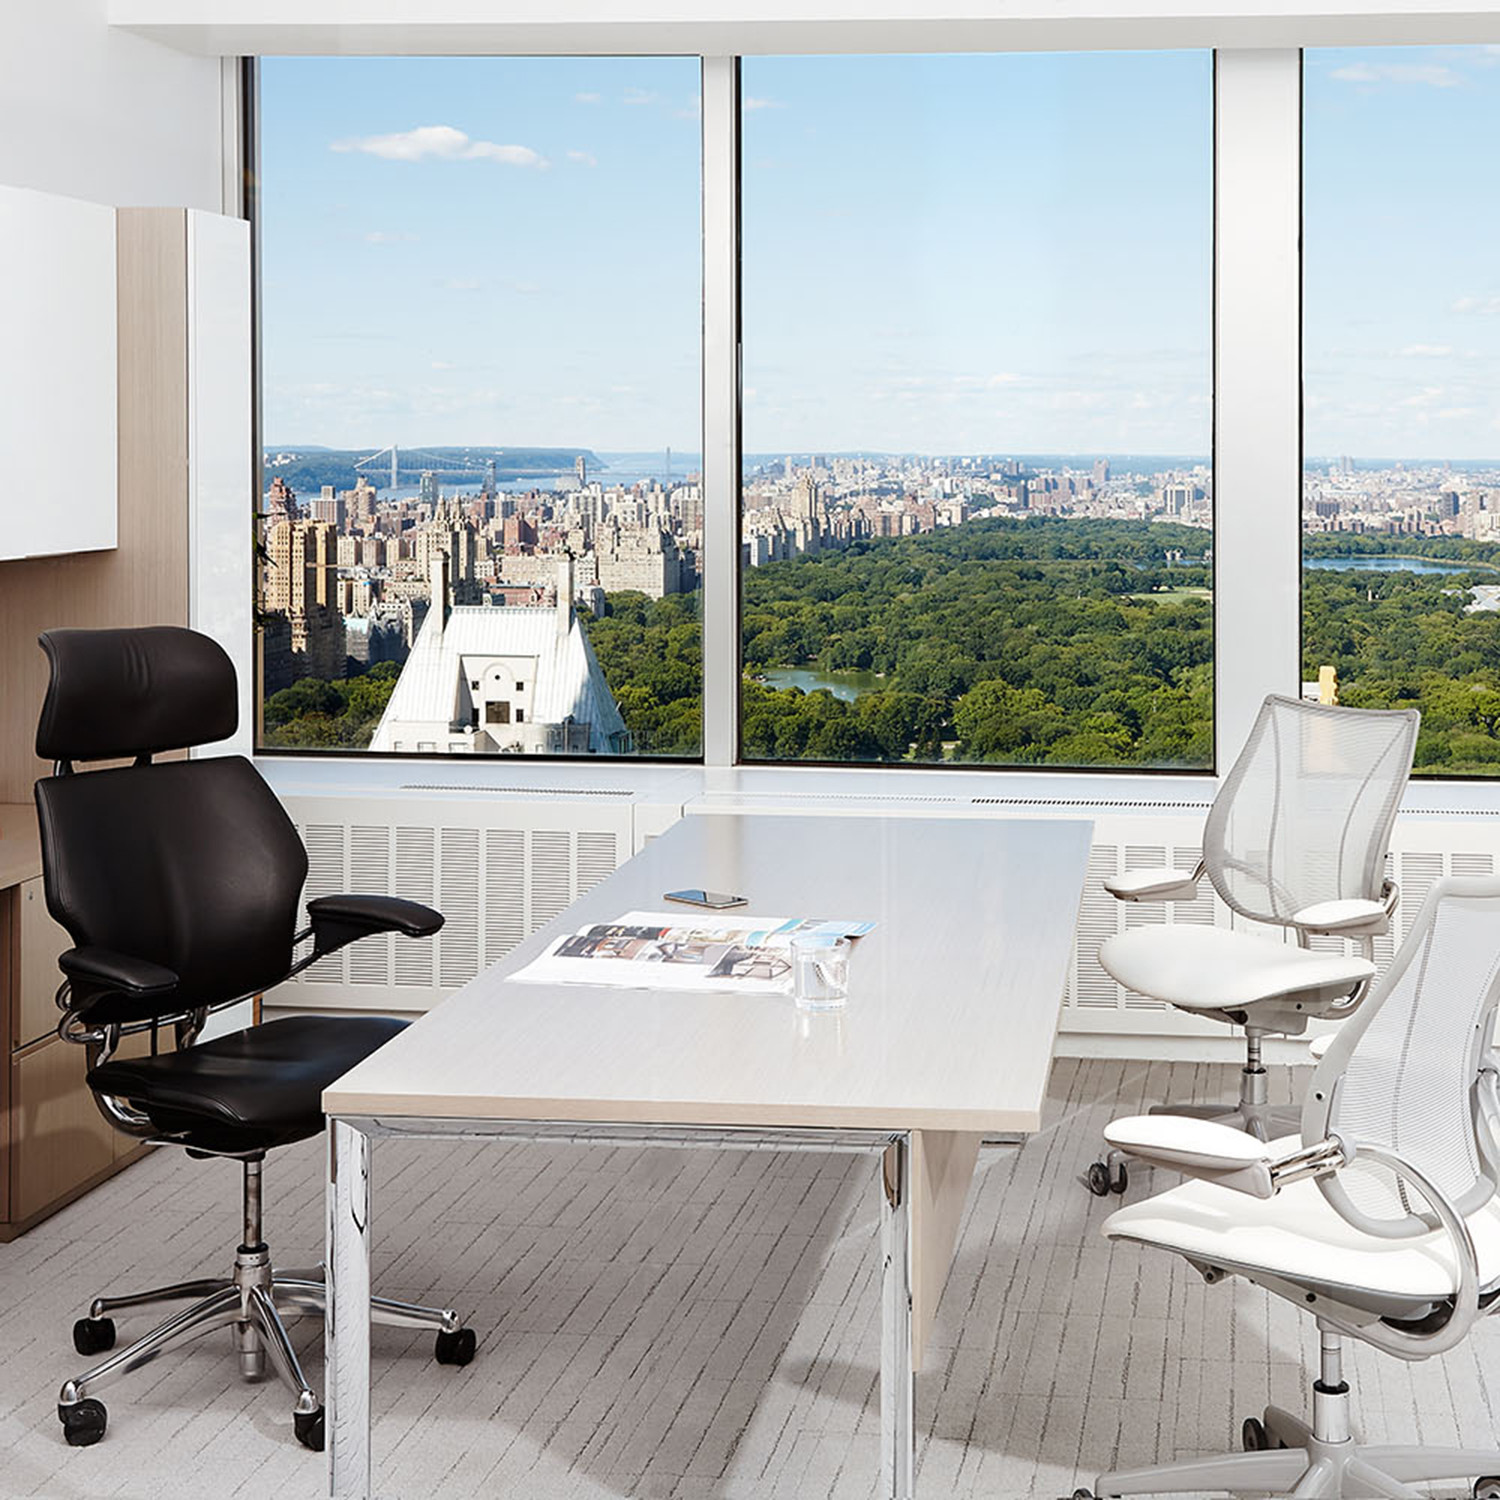 freedom task chair with headrest evenflo majestic high recall 43 graphite humanscale